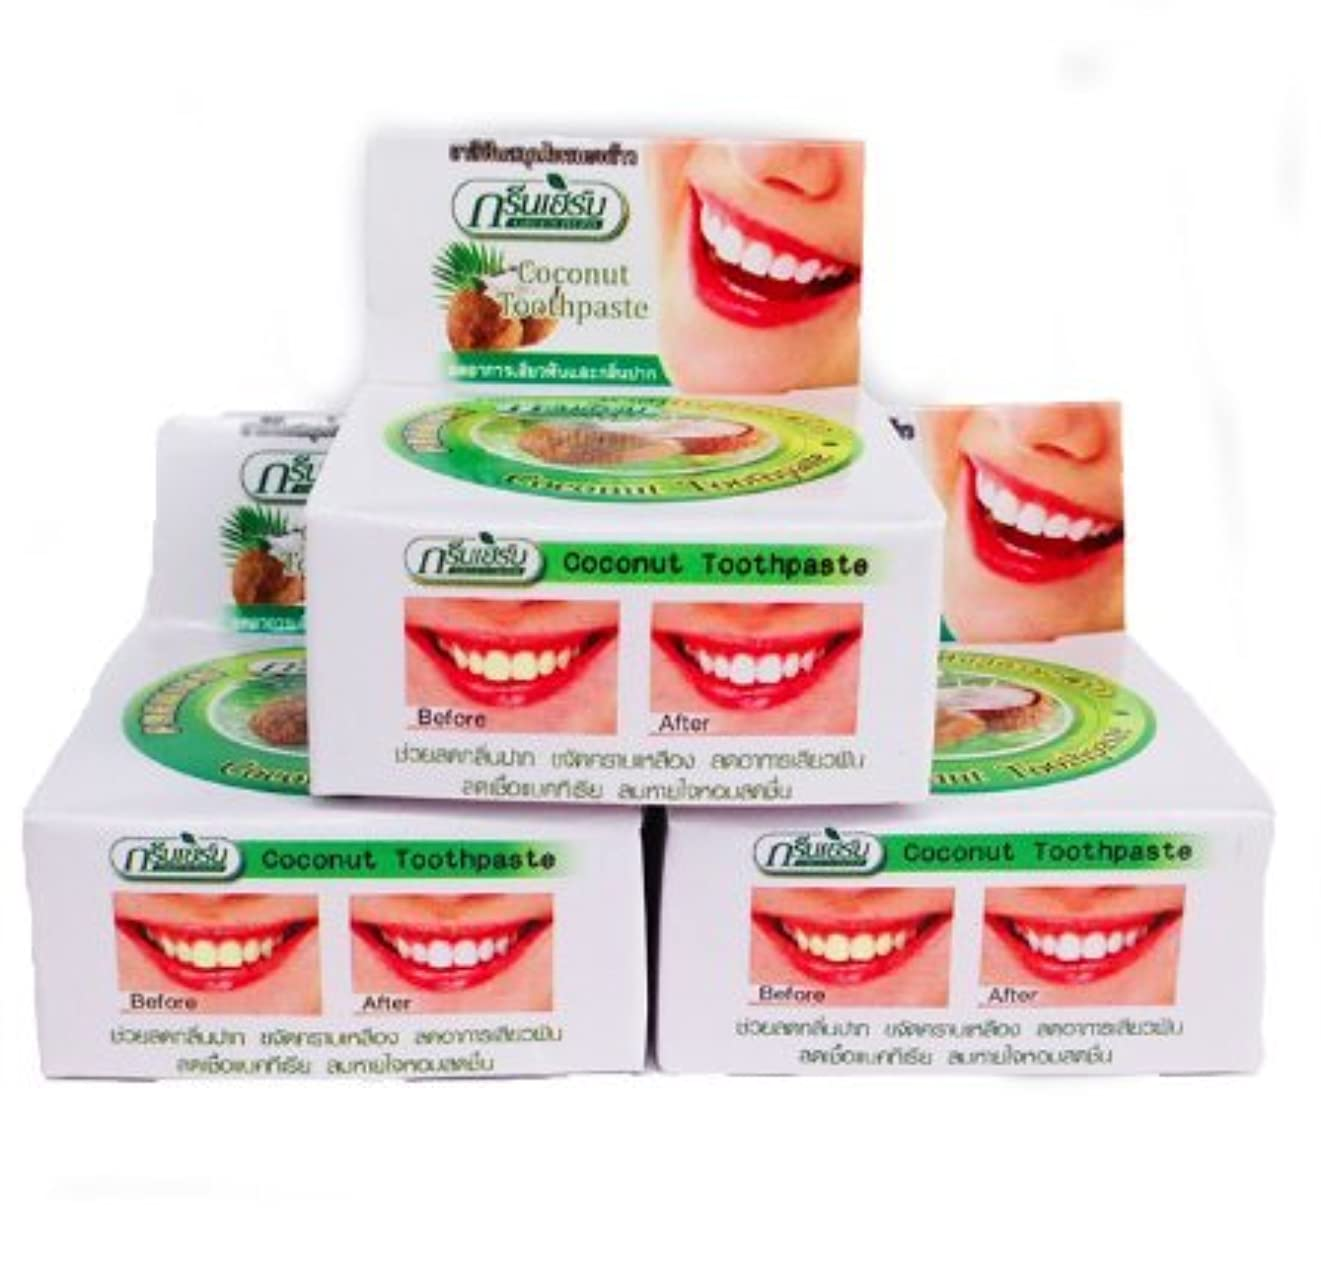 エレベーター共和国器具ASN ハーブ歯磨き粉 10g Thailand Coconut Toothpastes Herbal Clove Toothpaste Teeth Whitening Care 3 pcs. by ASN